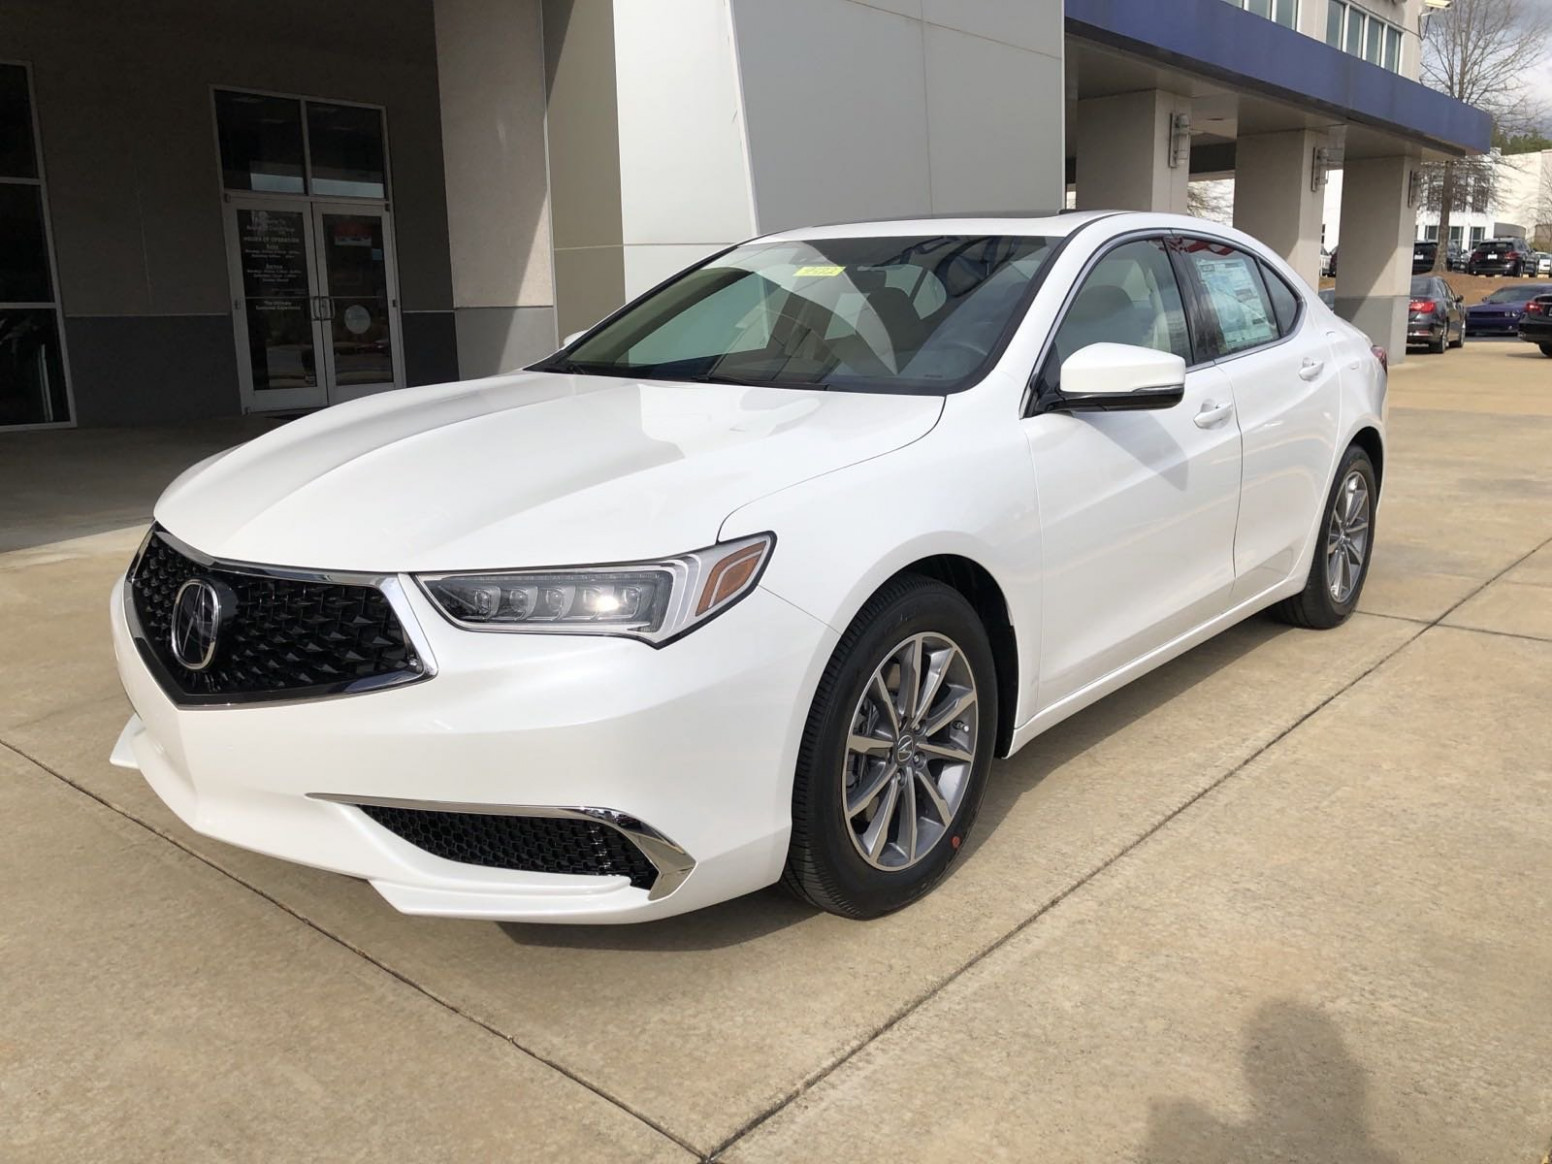 New 7 Acura TLX w/Technology Pkg With Navigation - 2020 acura for sale